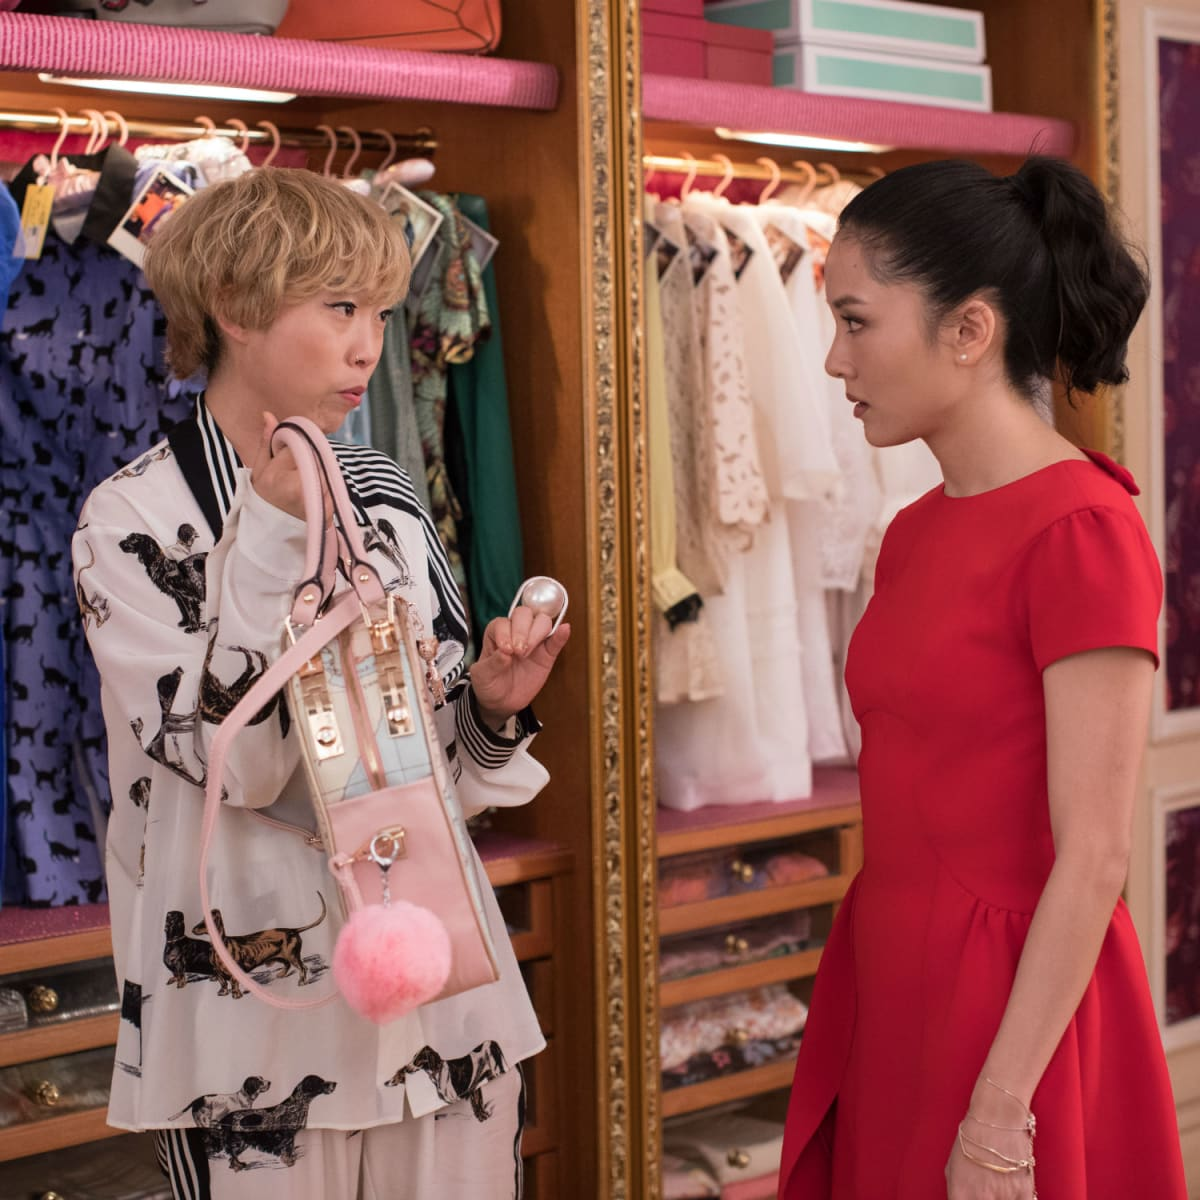 Awkwafina and Constance Wu in Crazy Rich Asians